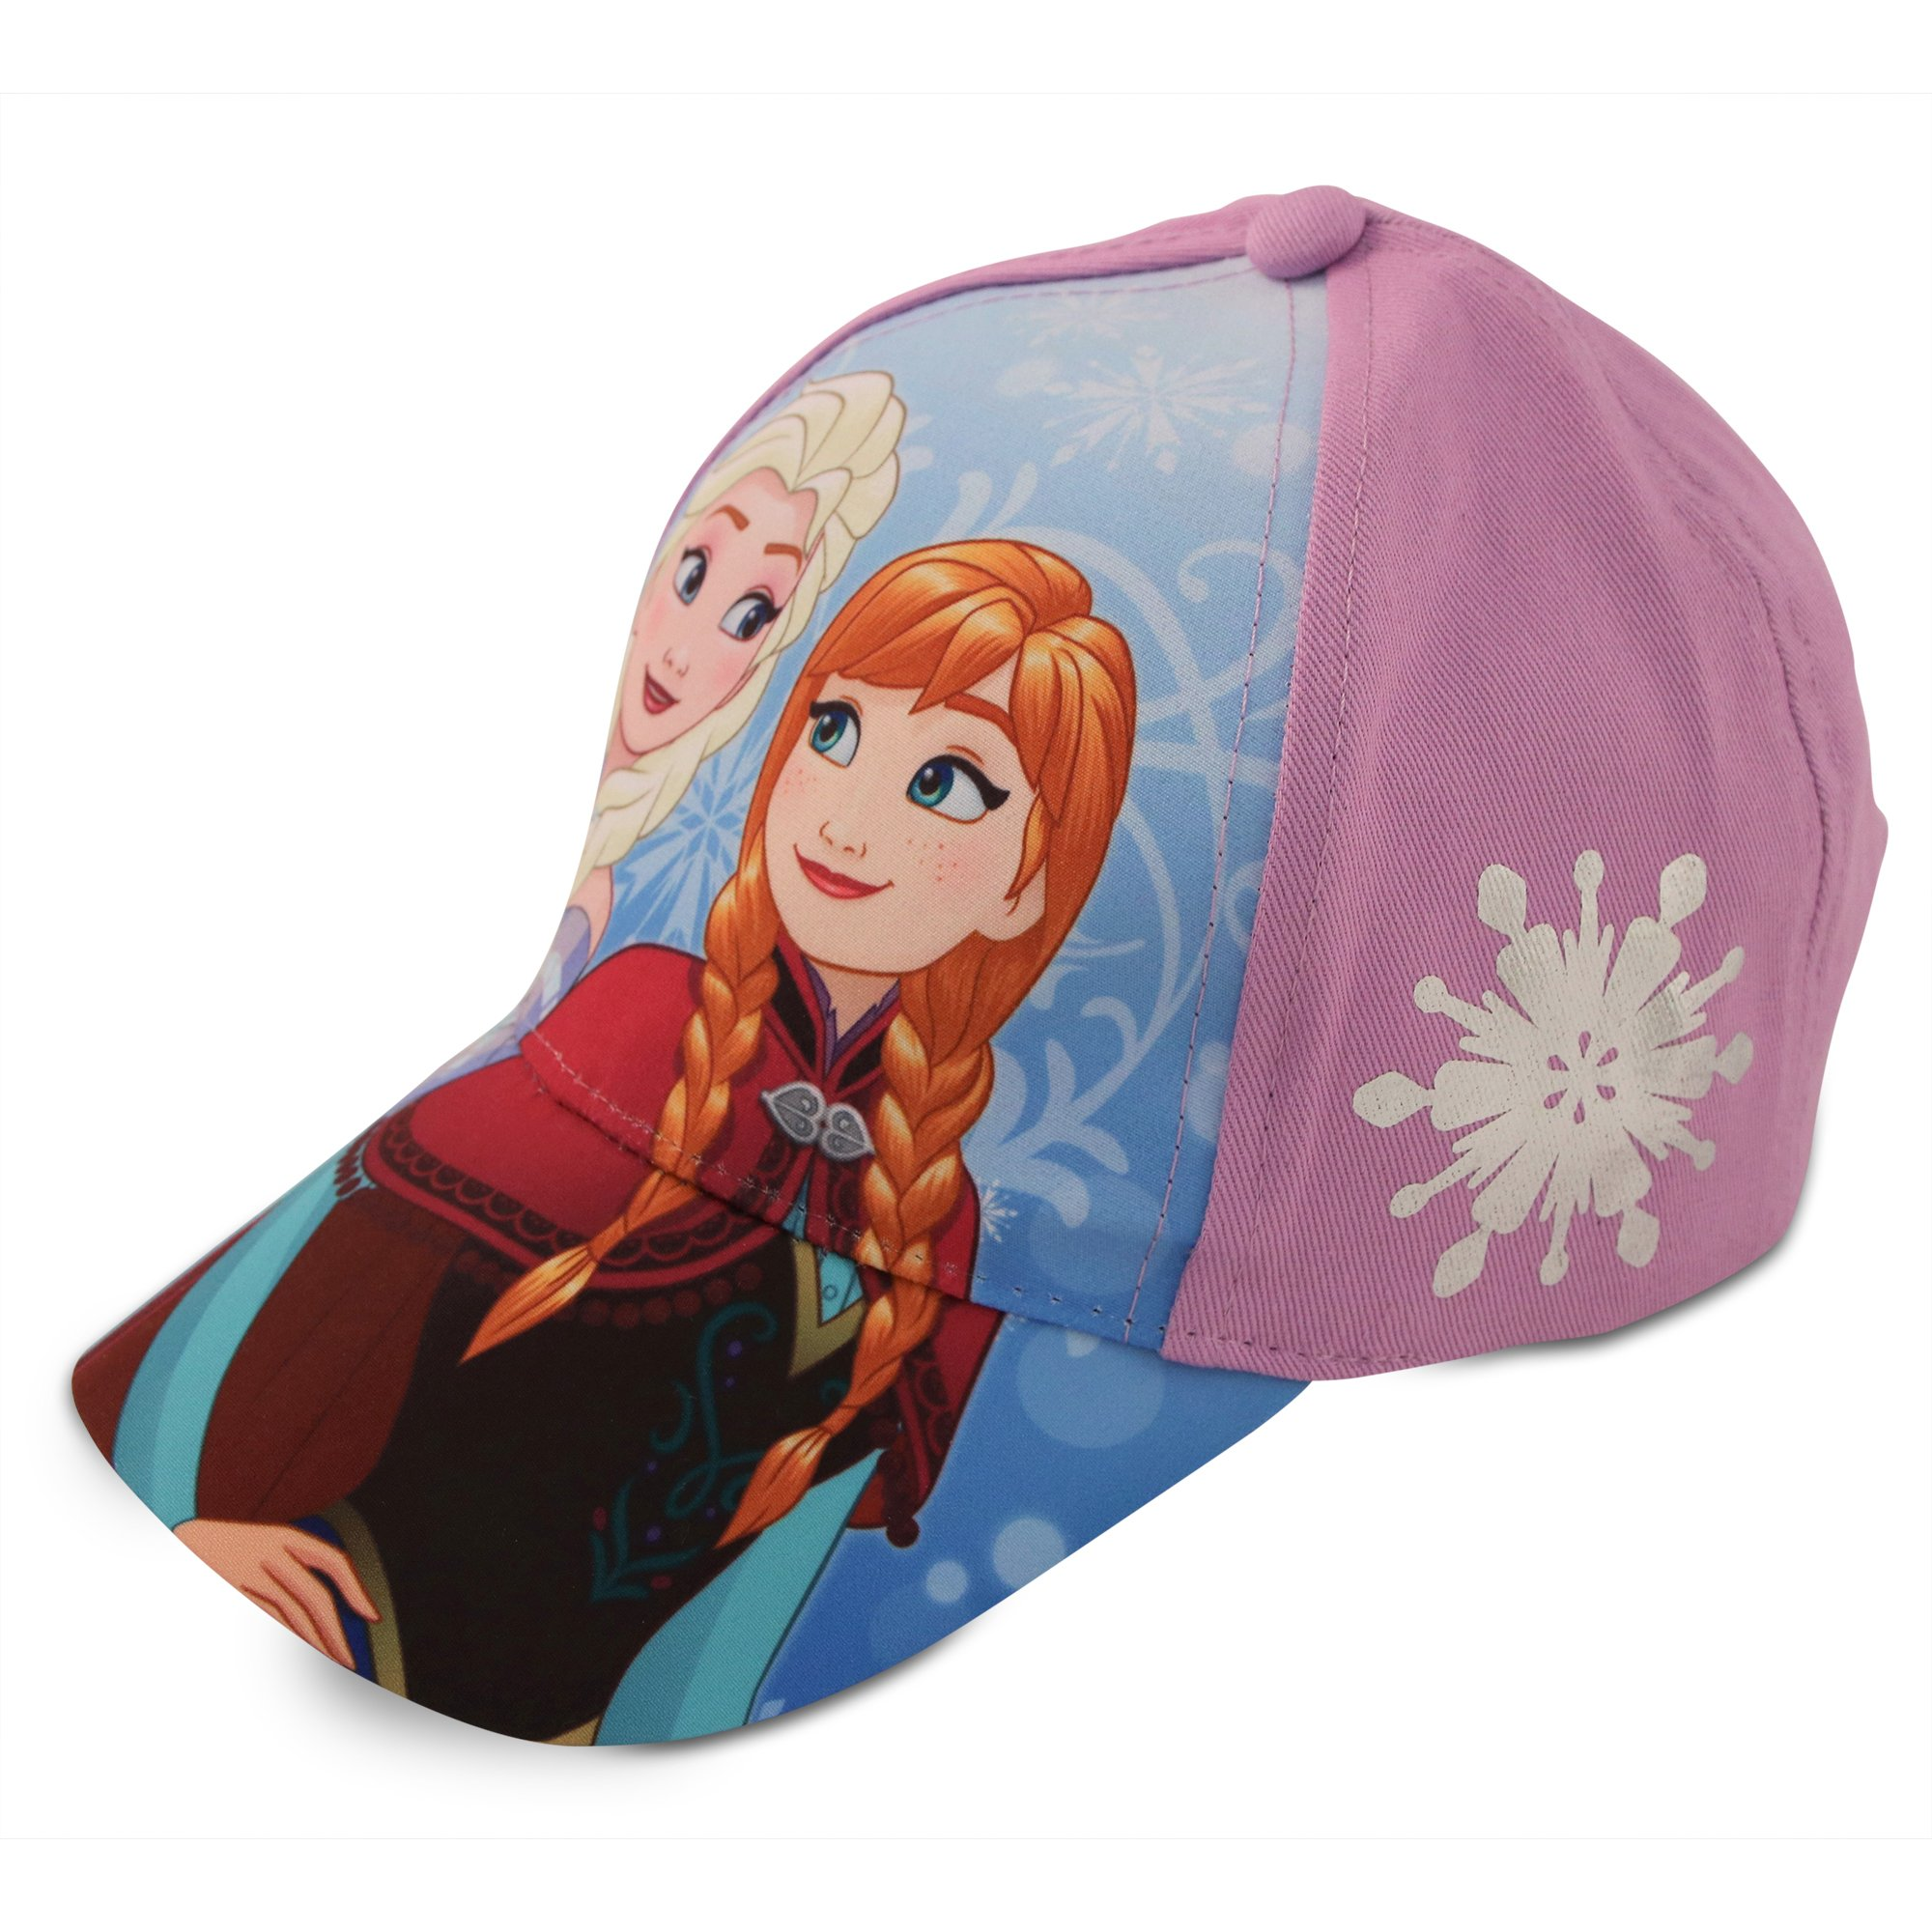 Disney Little Girls Frozen Assorted Character Cotton Baseball Cap, Age 2-7 (Toddler Girls - Age 2-4 - 51CM, Purple/Blue Elsa and Anna Design)